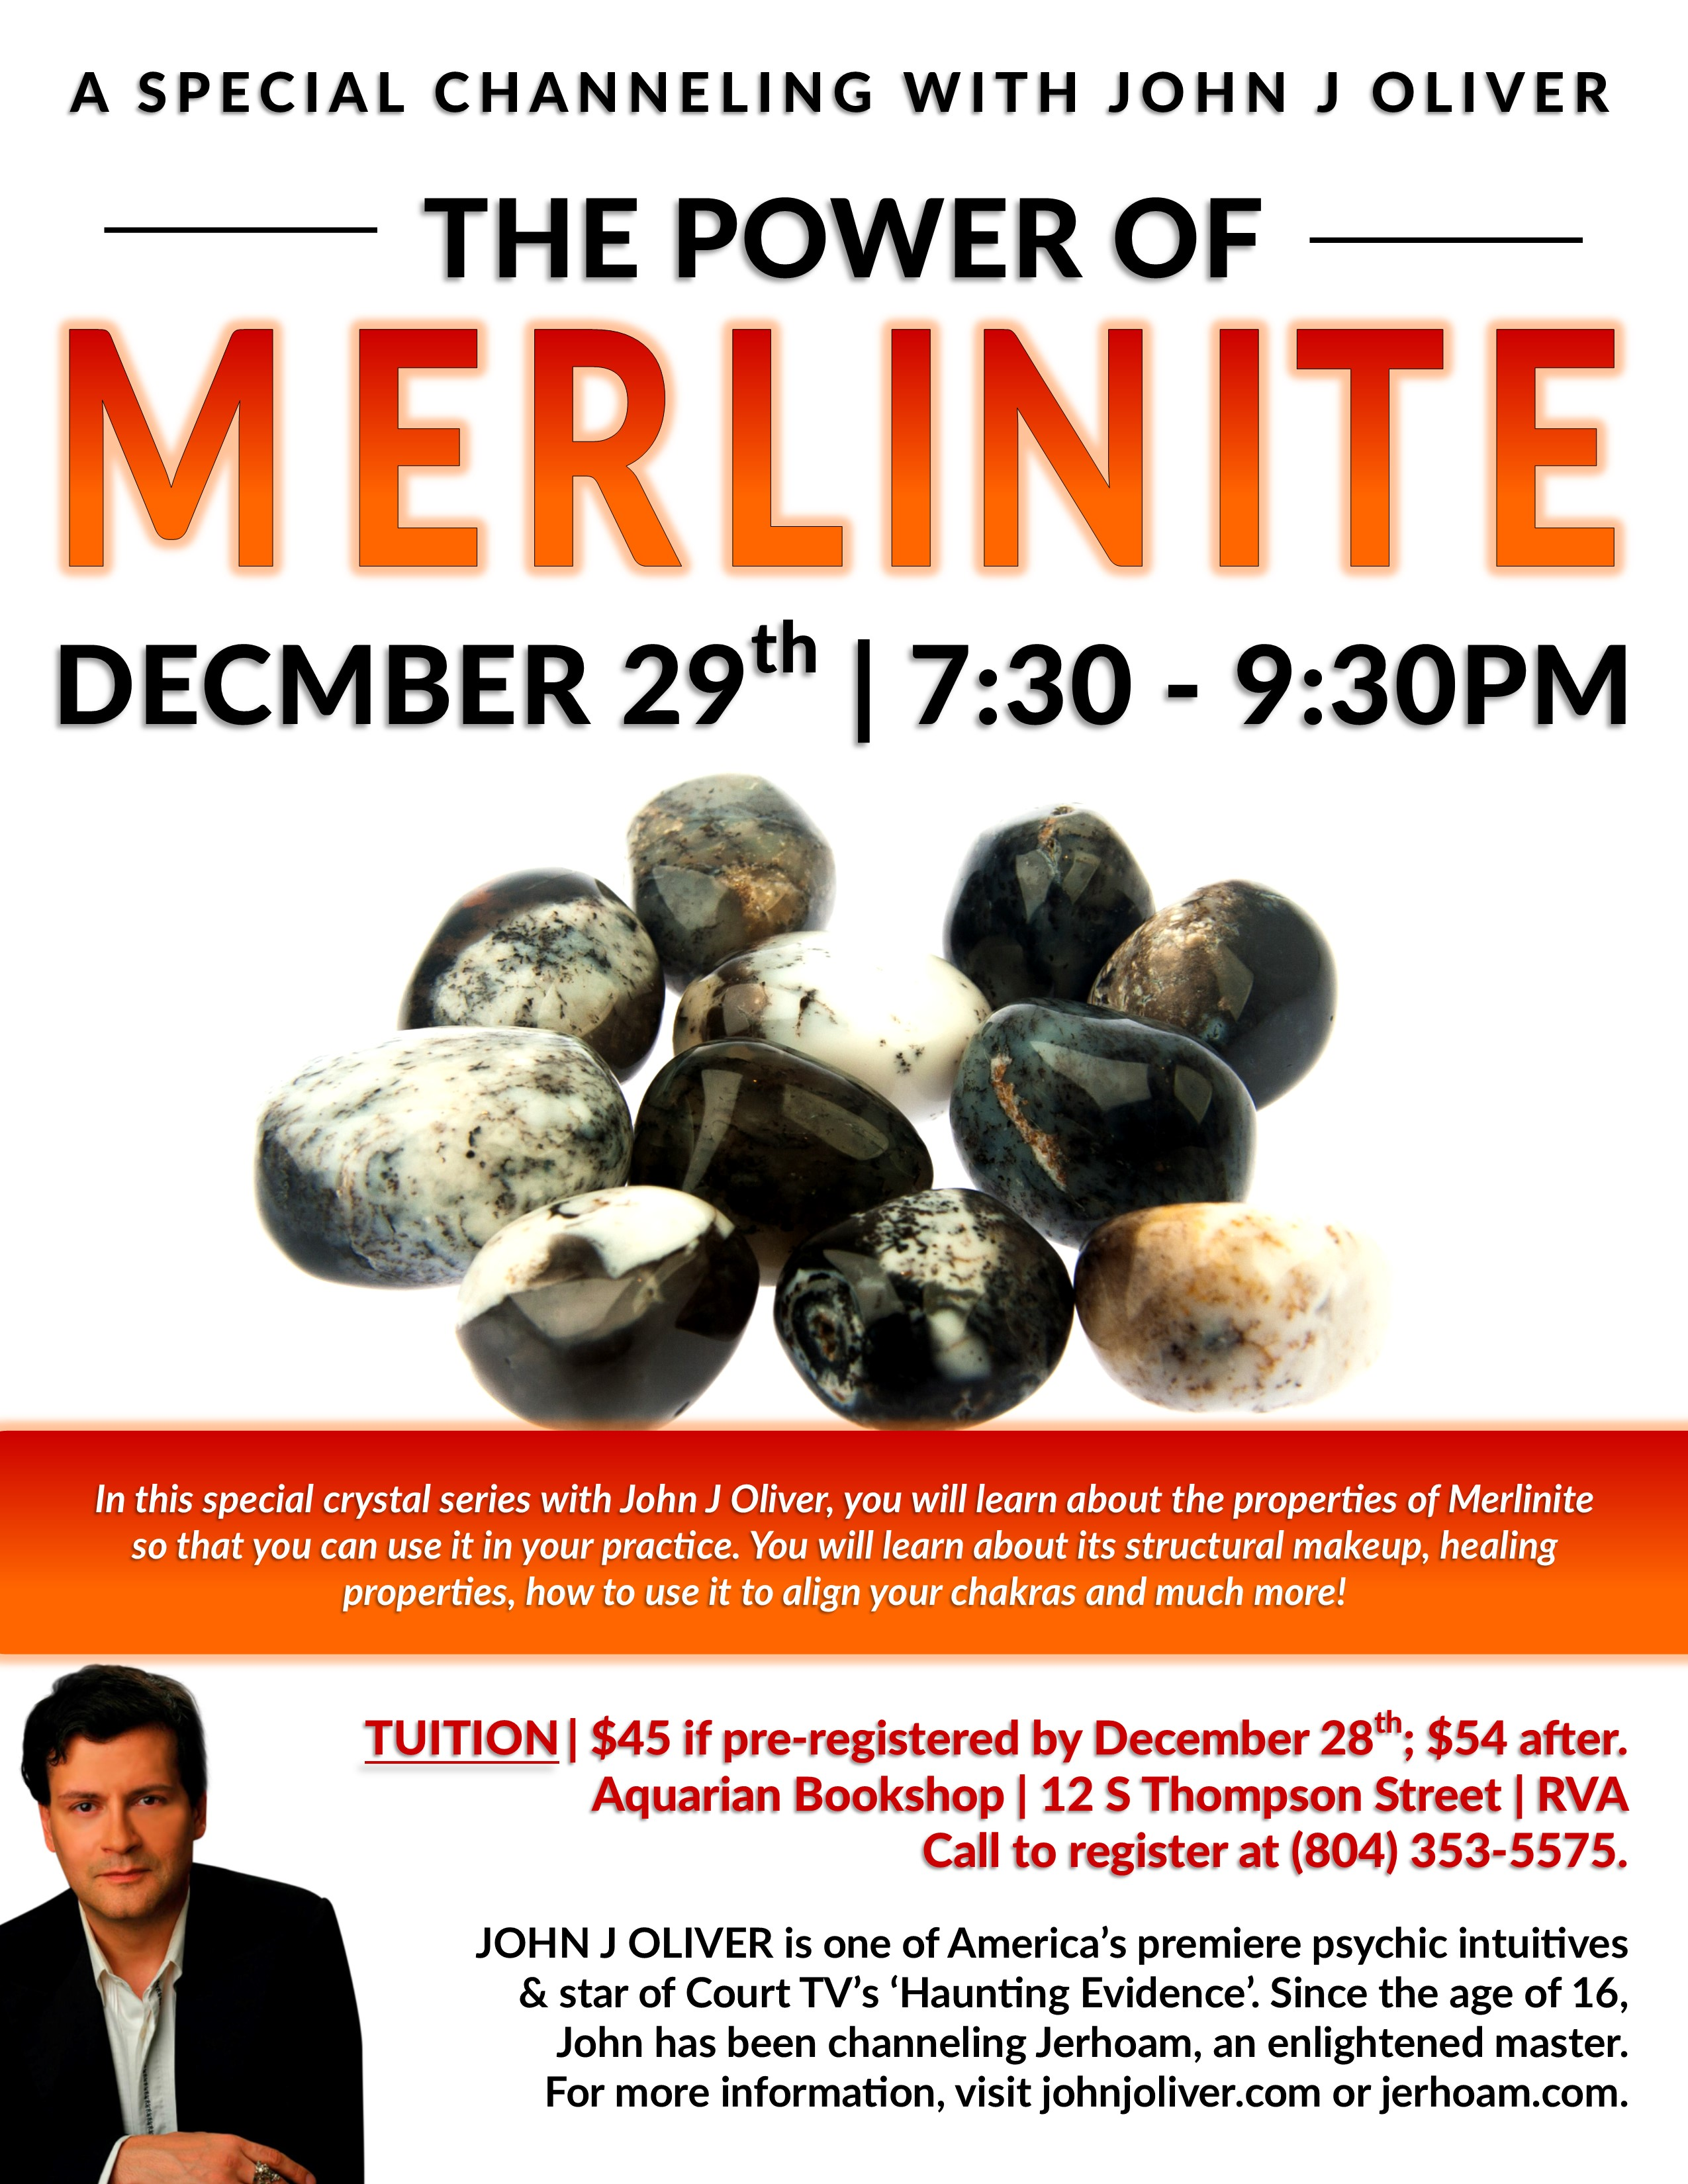 The Power of Merlinite | December 29, 7:30-9:30pm